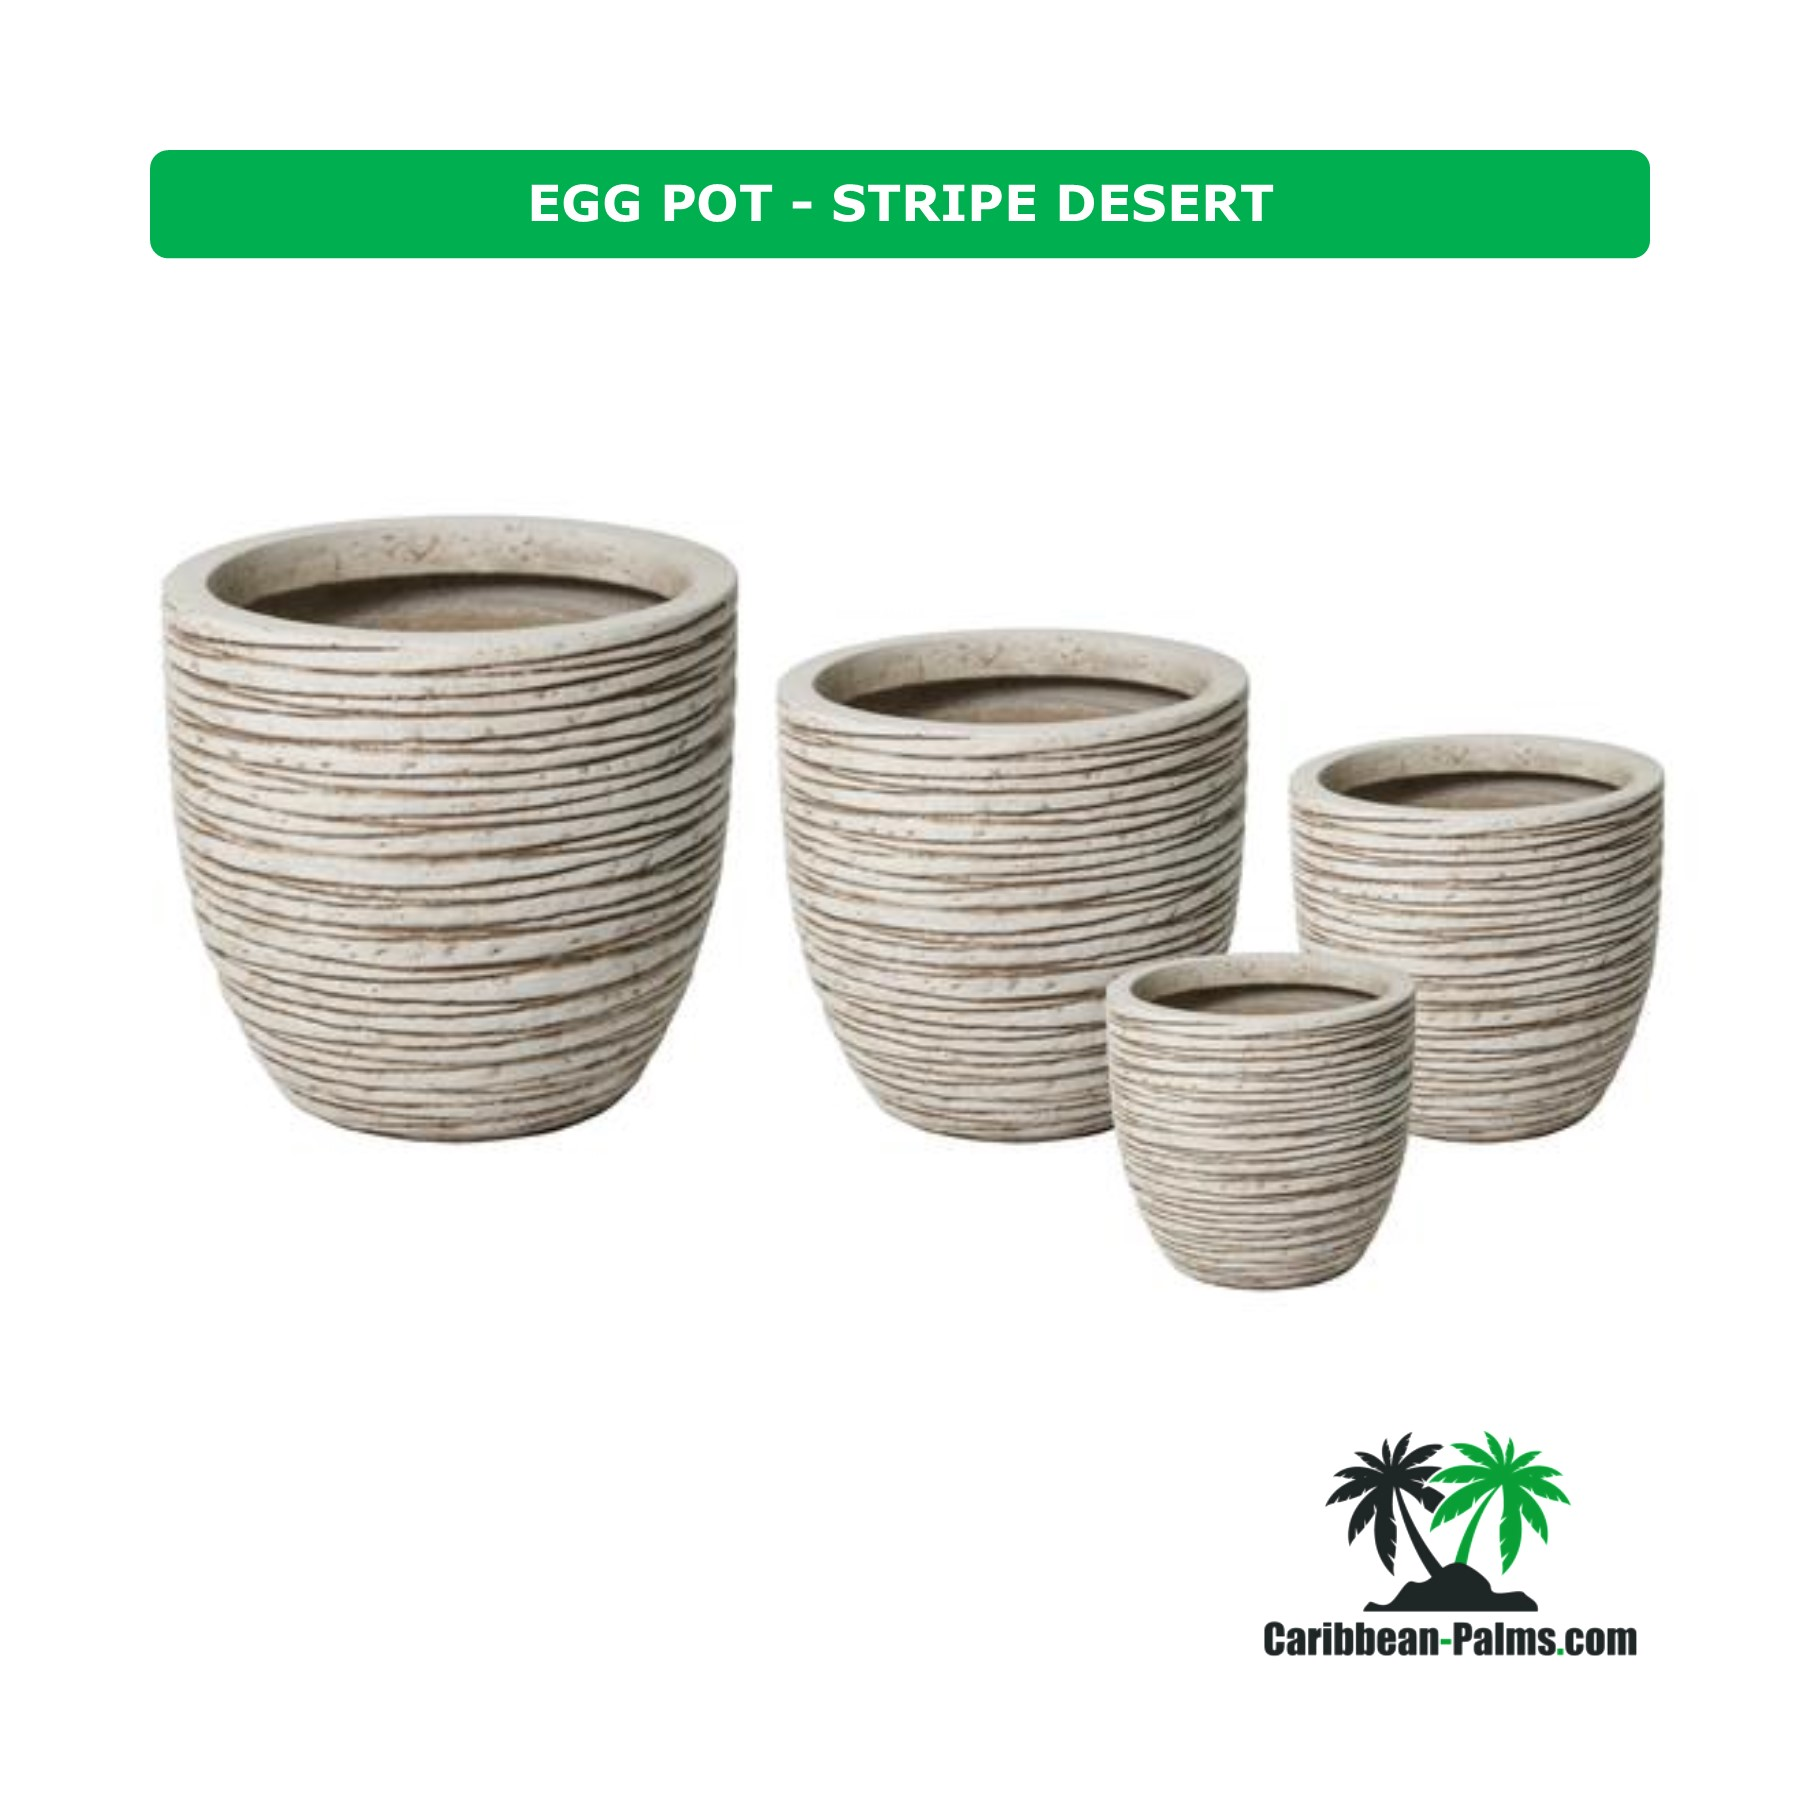 EGG POT STRIPE DESERT